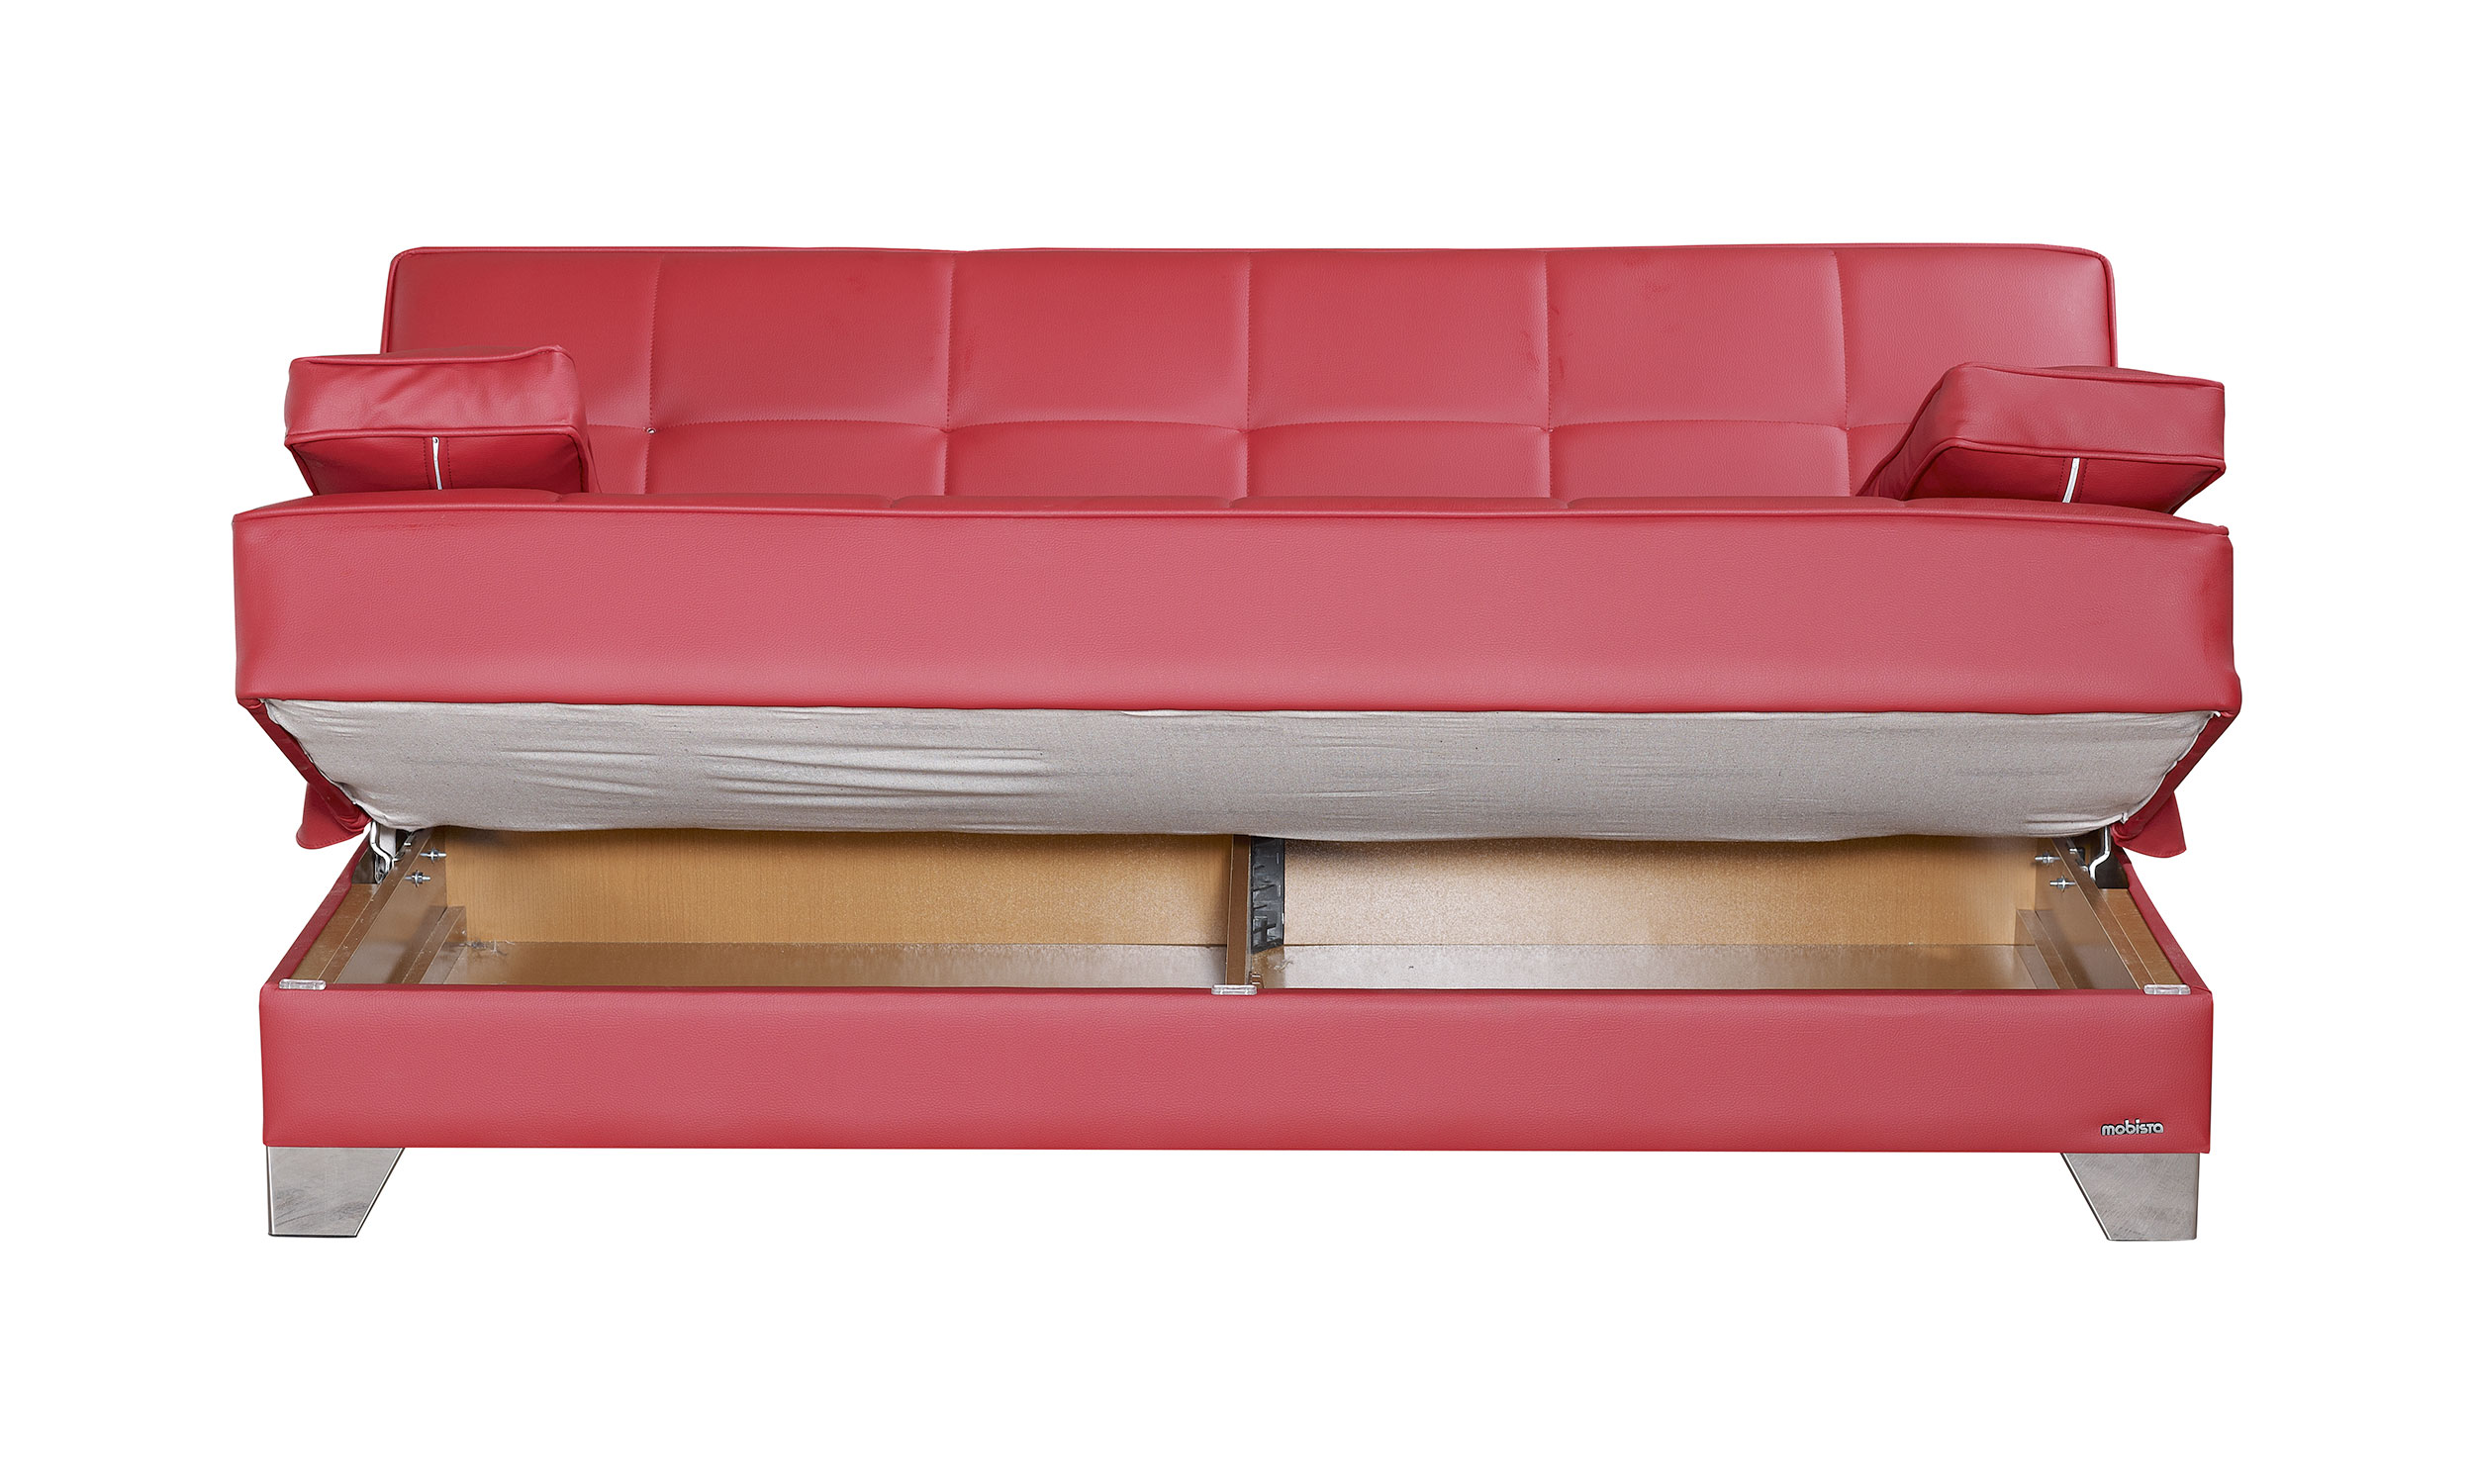 Tribeca nyc prestige red sofa bed by mobista for Sofa bed nyc